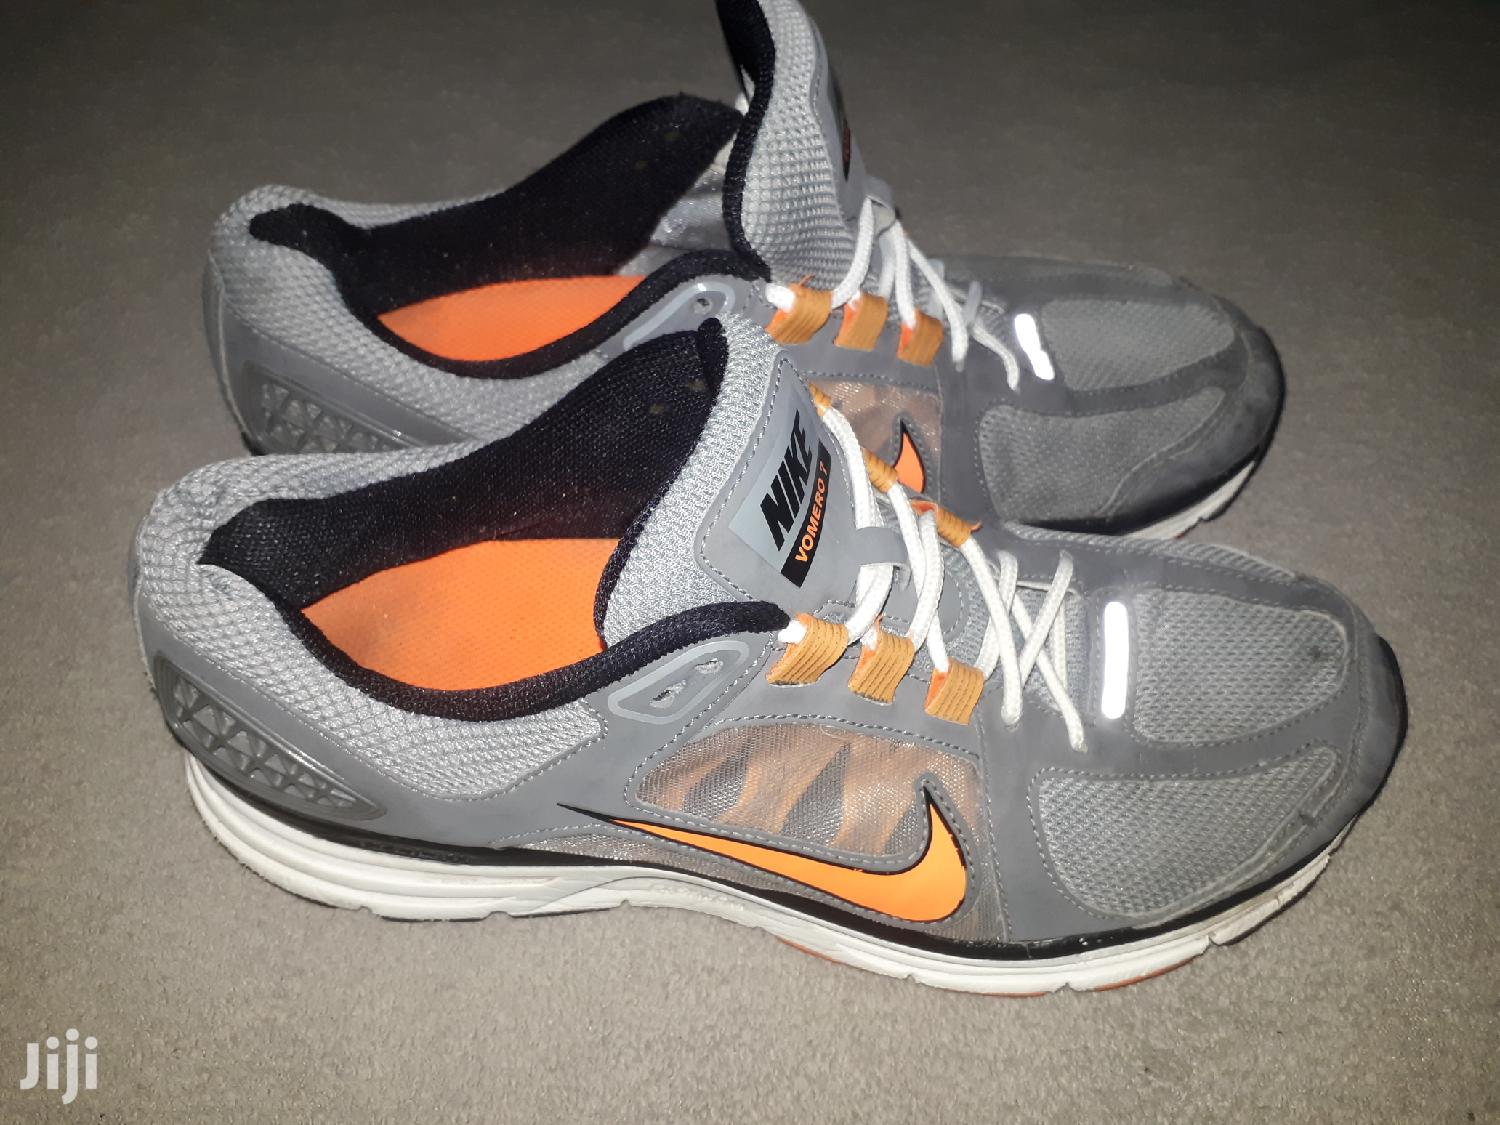 Archive: Nike Vomero 7 Sneakers